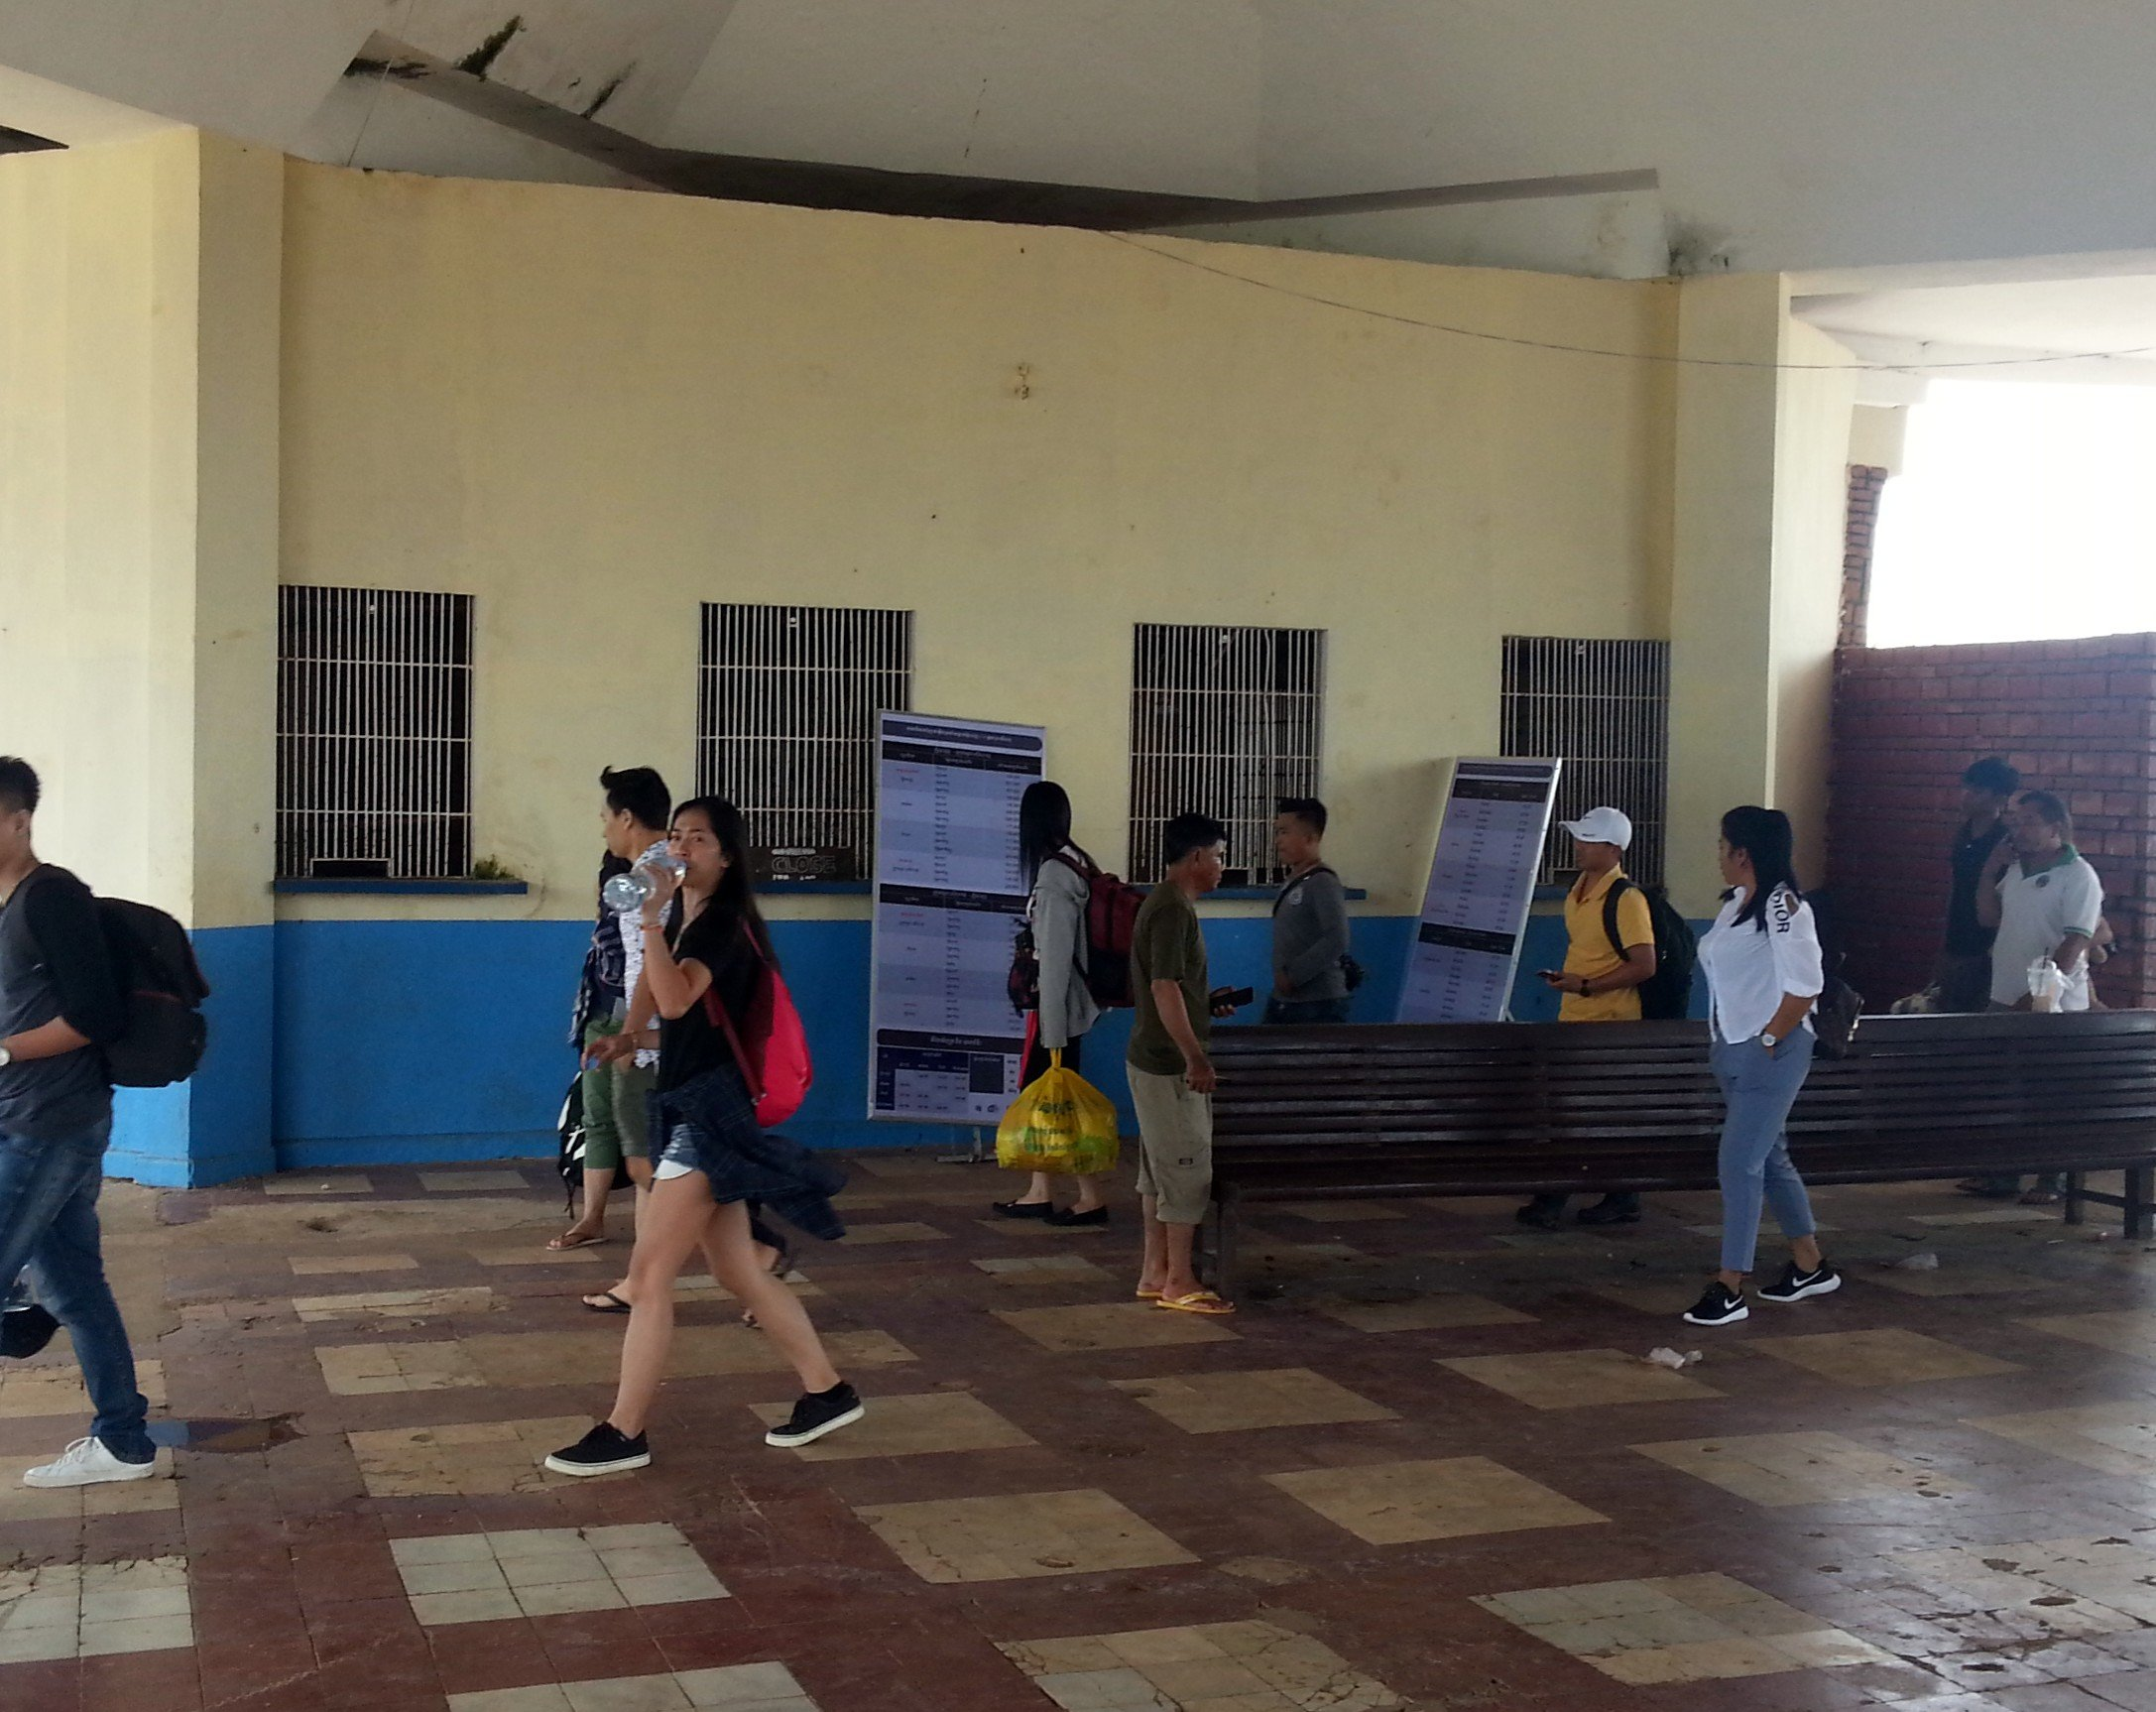 Ticket counters at Kampot Railway Station